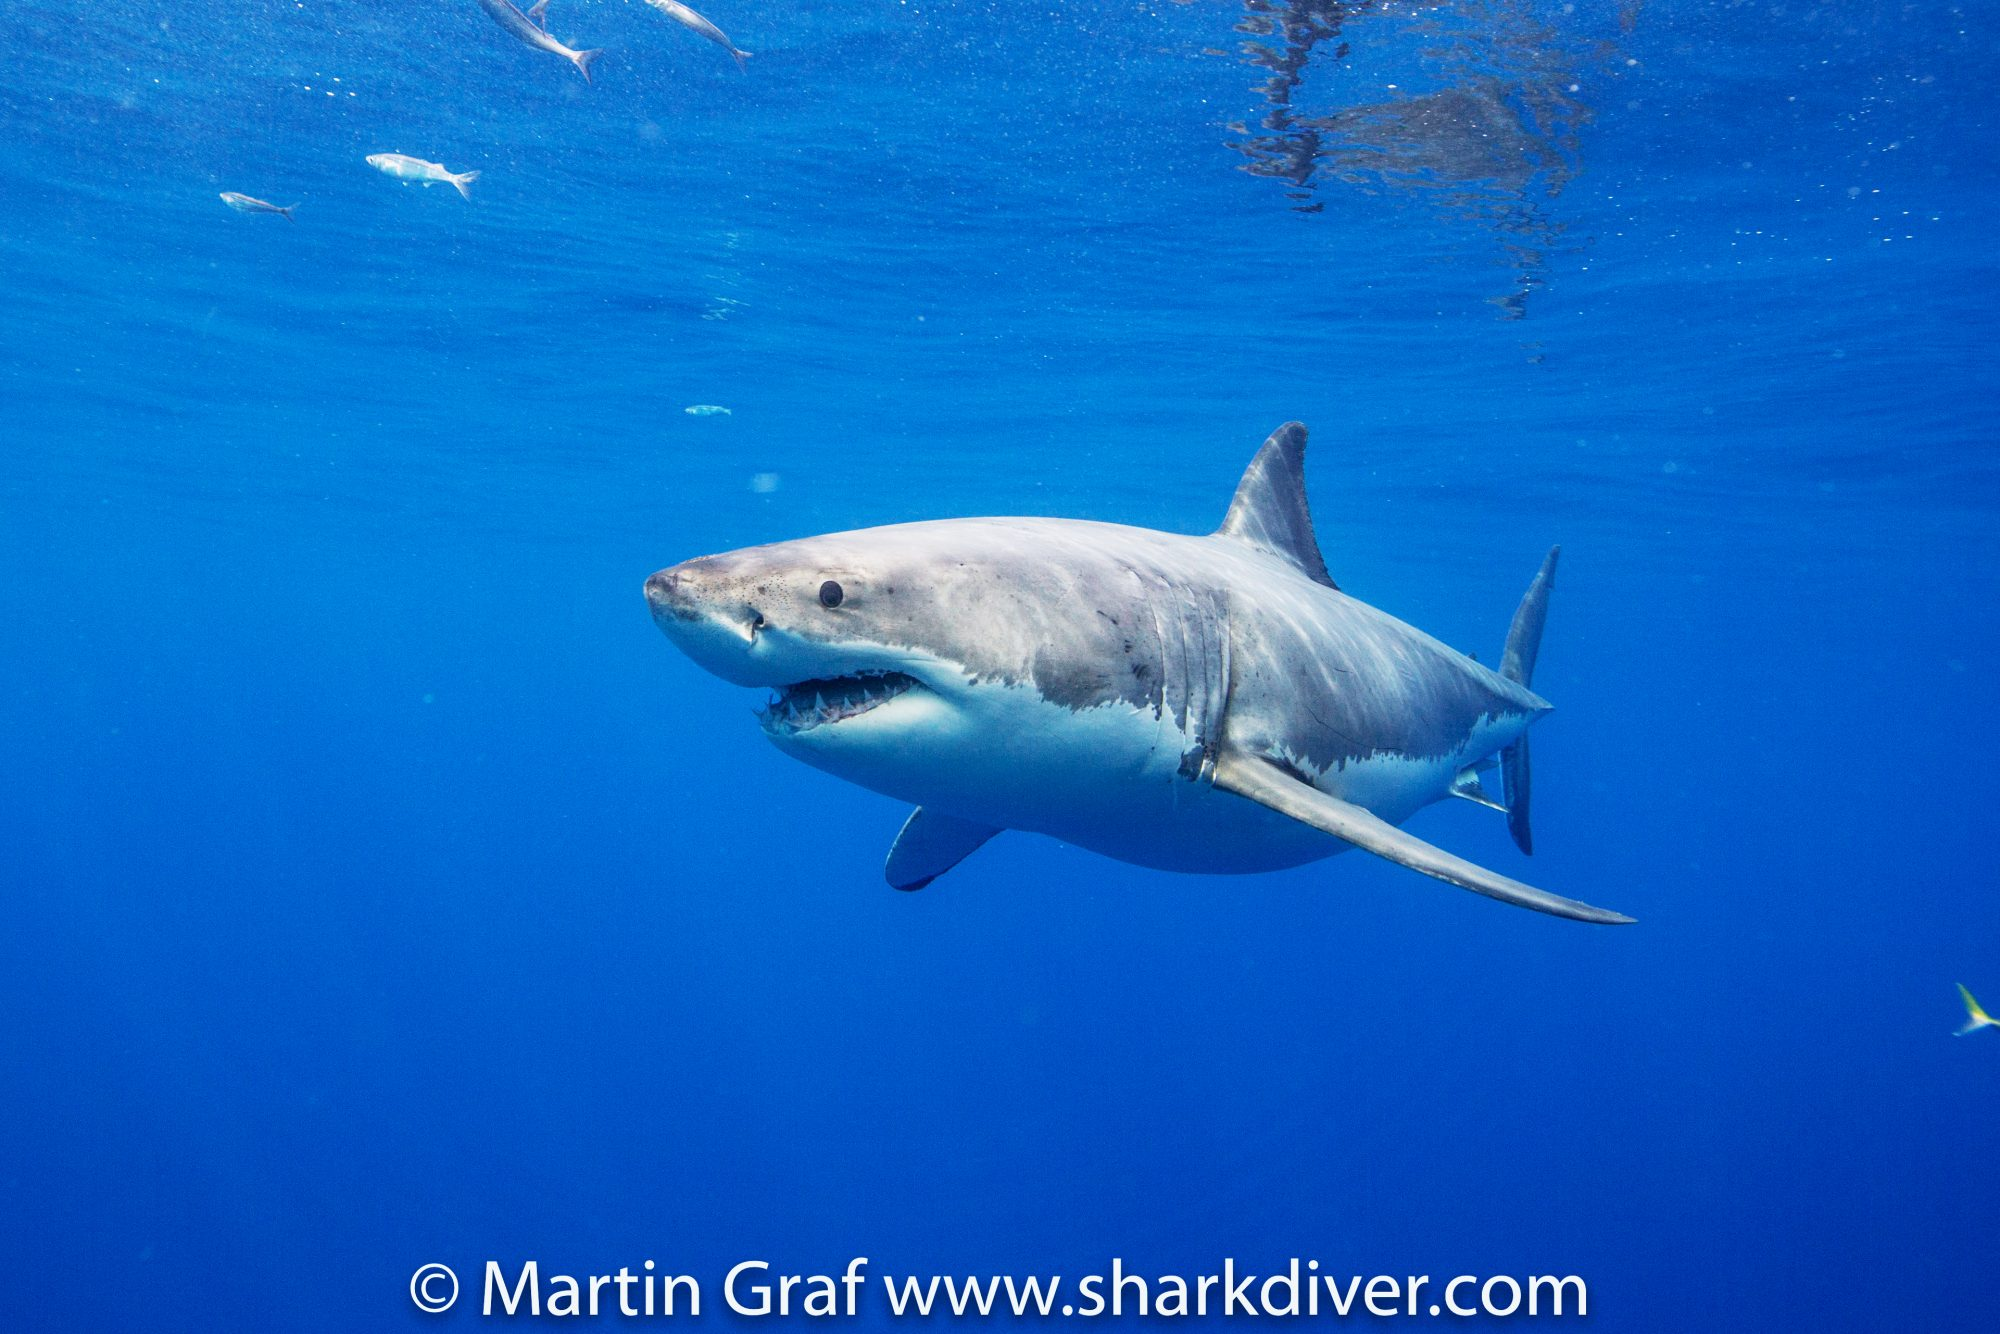 Great White, photo by Martin Graf of Shark Diver